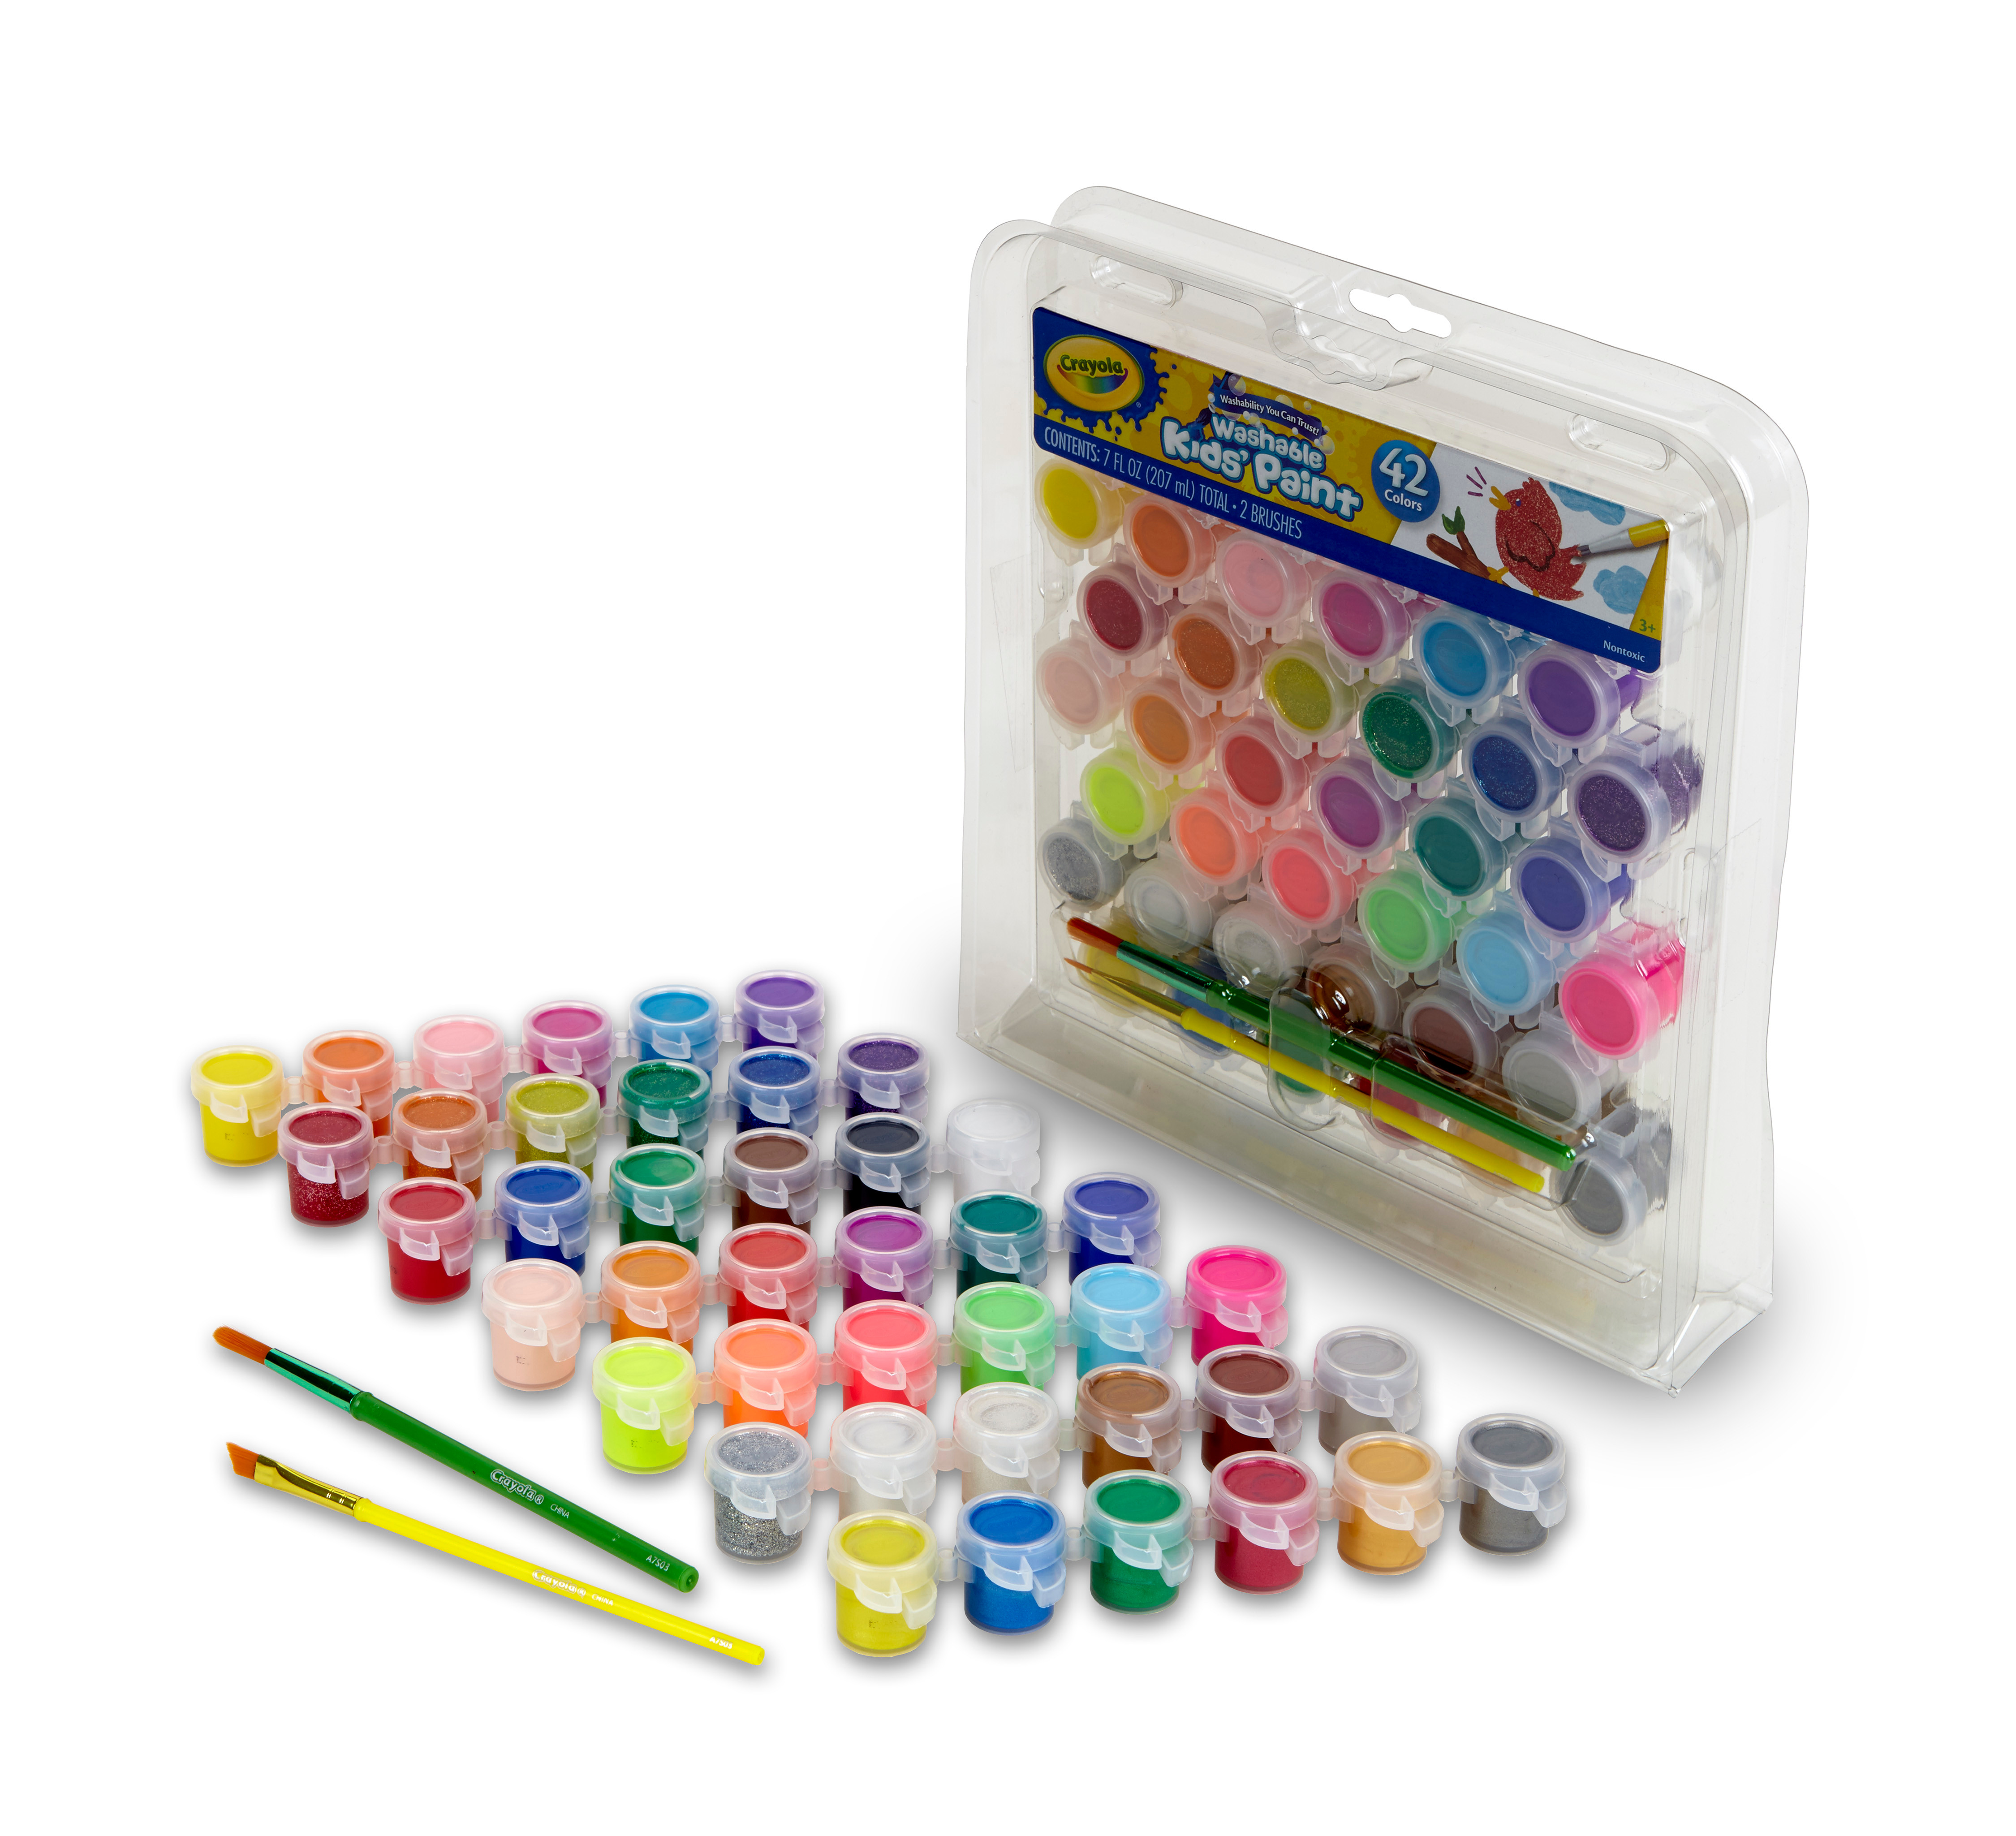 Hobby World Tower Of Paints 10 Paints Bright Neon Metallic And Glitter 3+